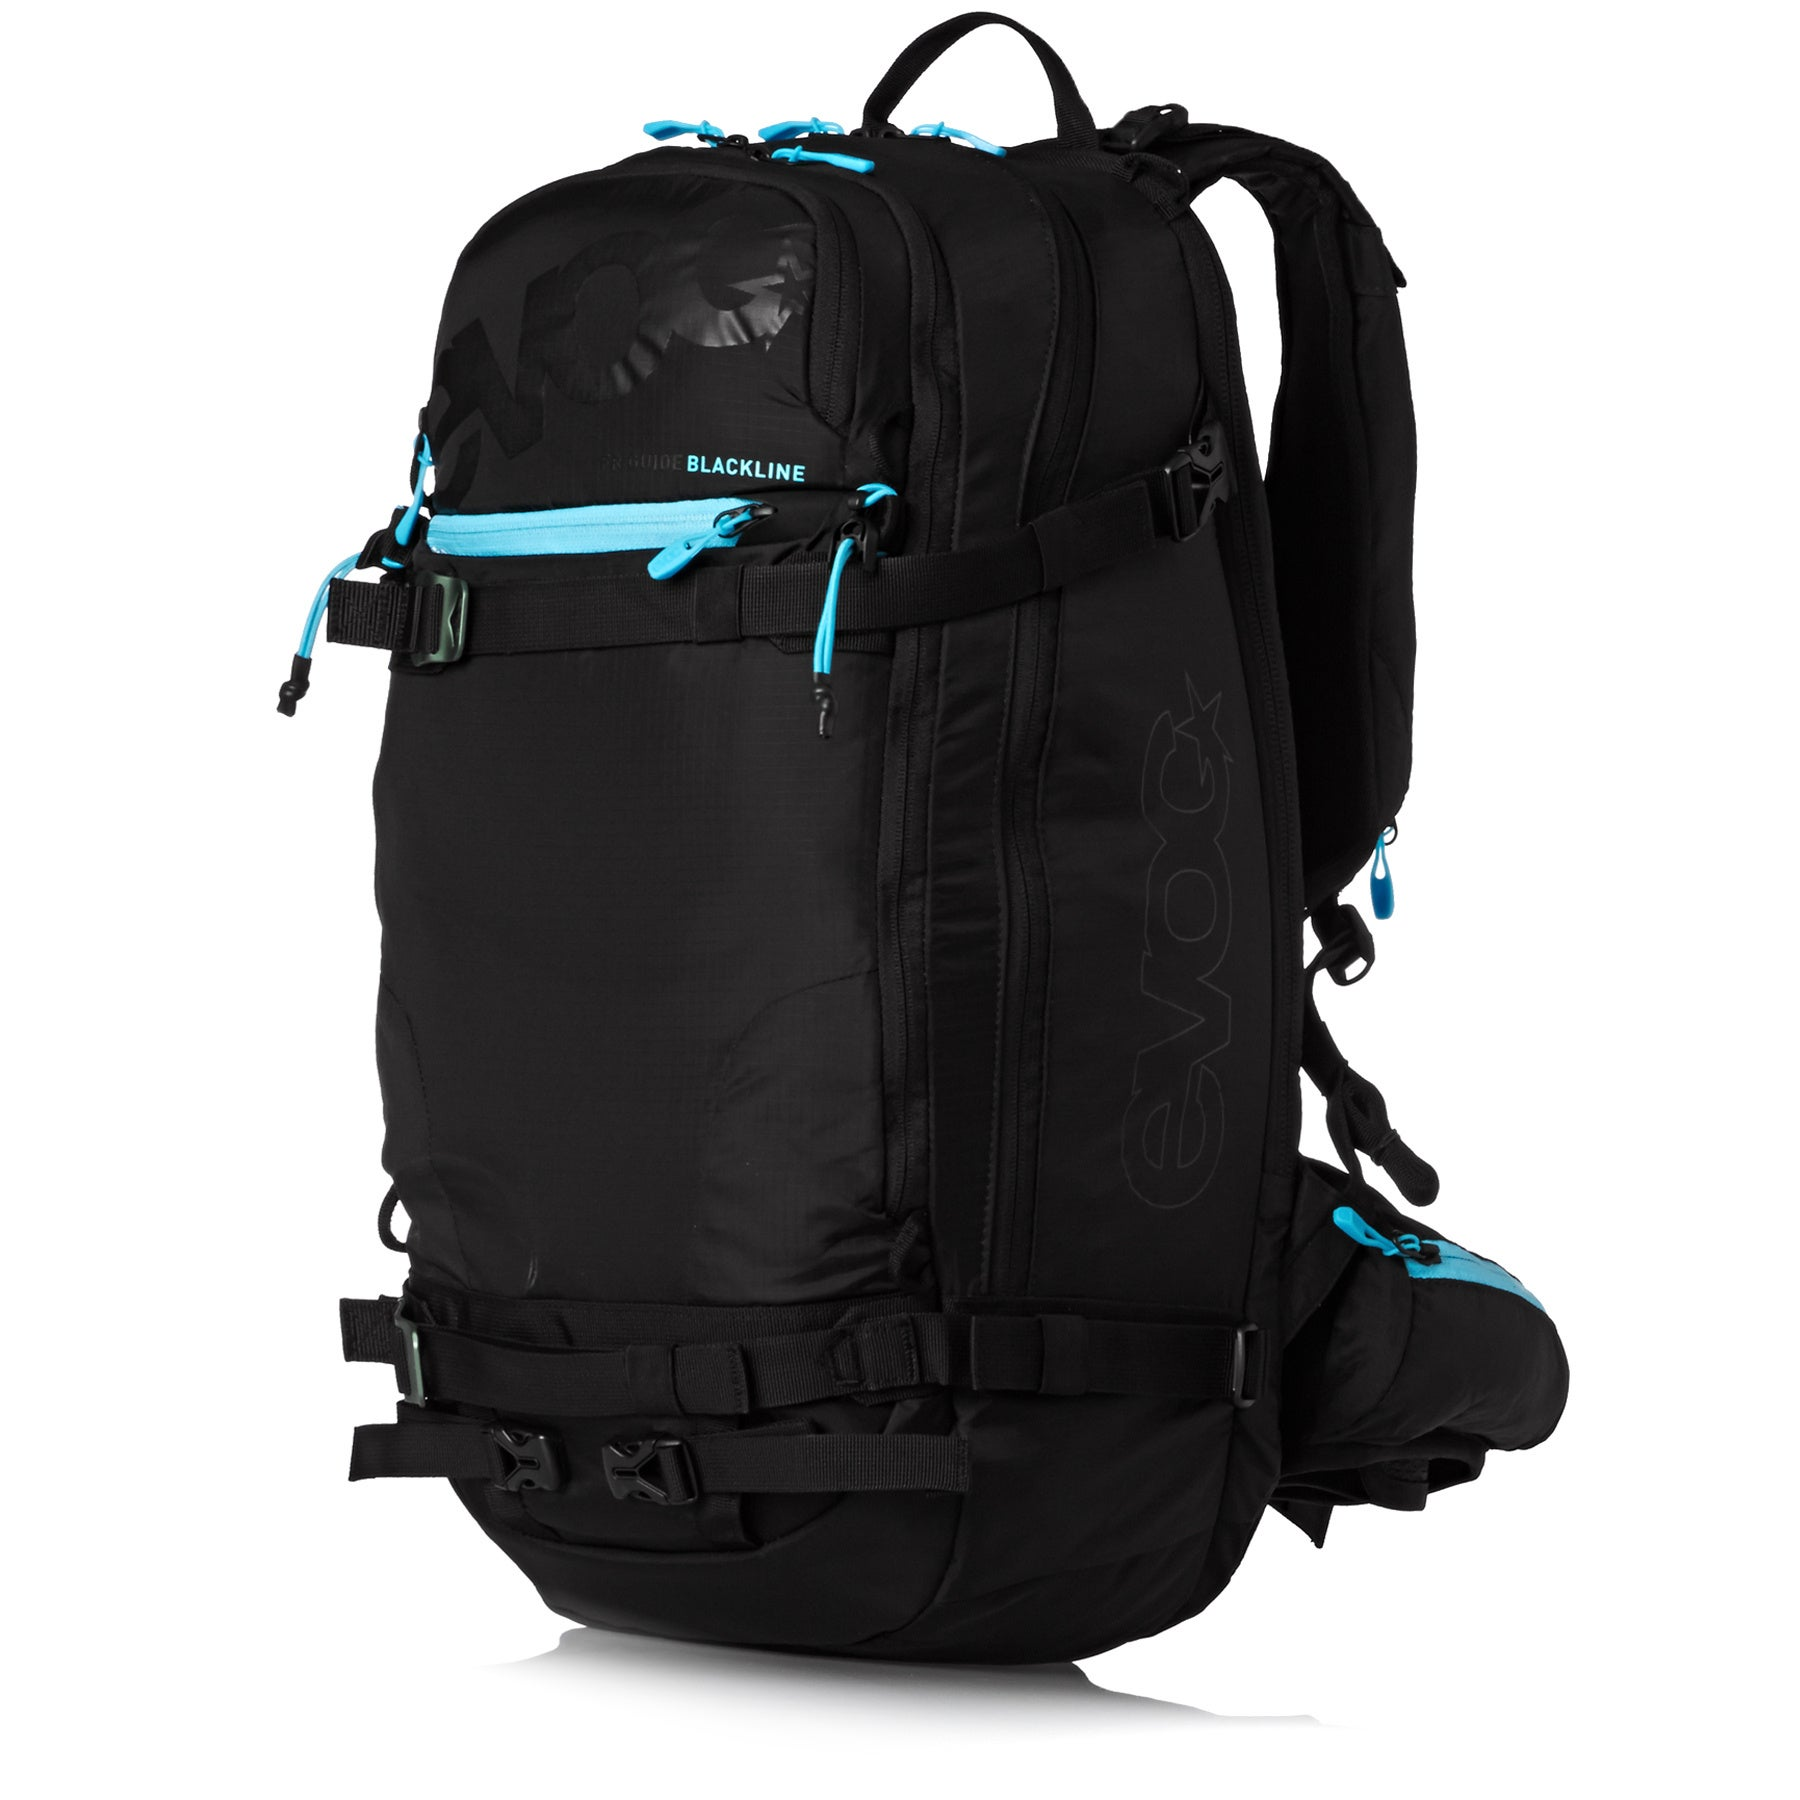 EVOC FR Guide Blackline 30L Snow Backpack - Black